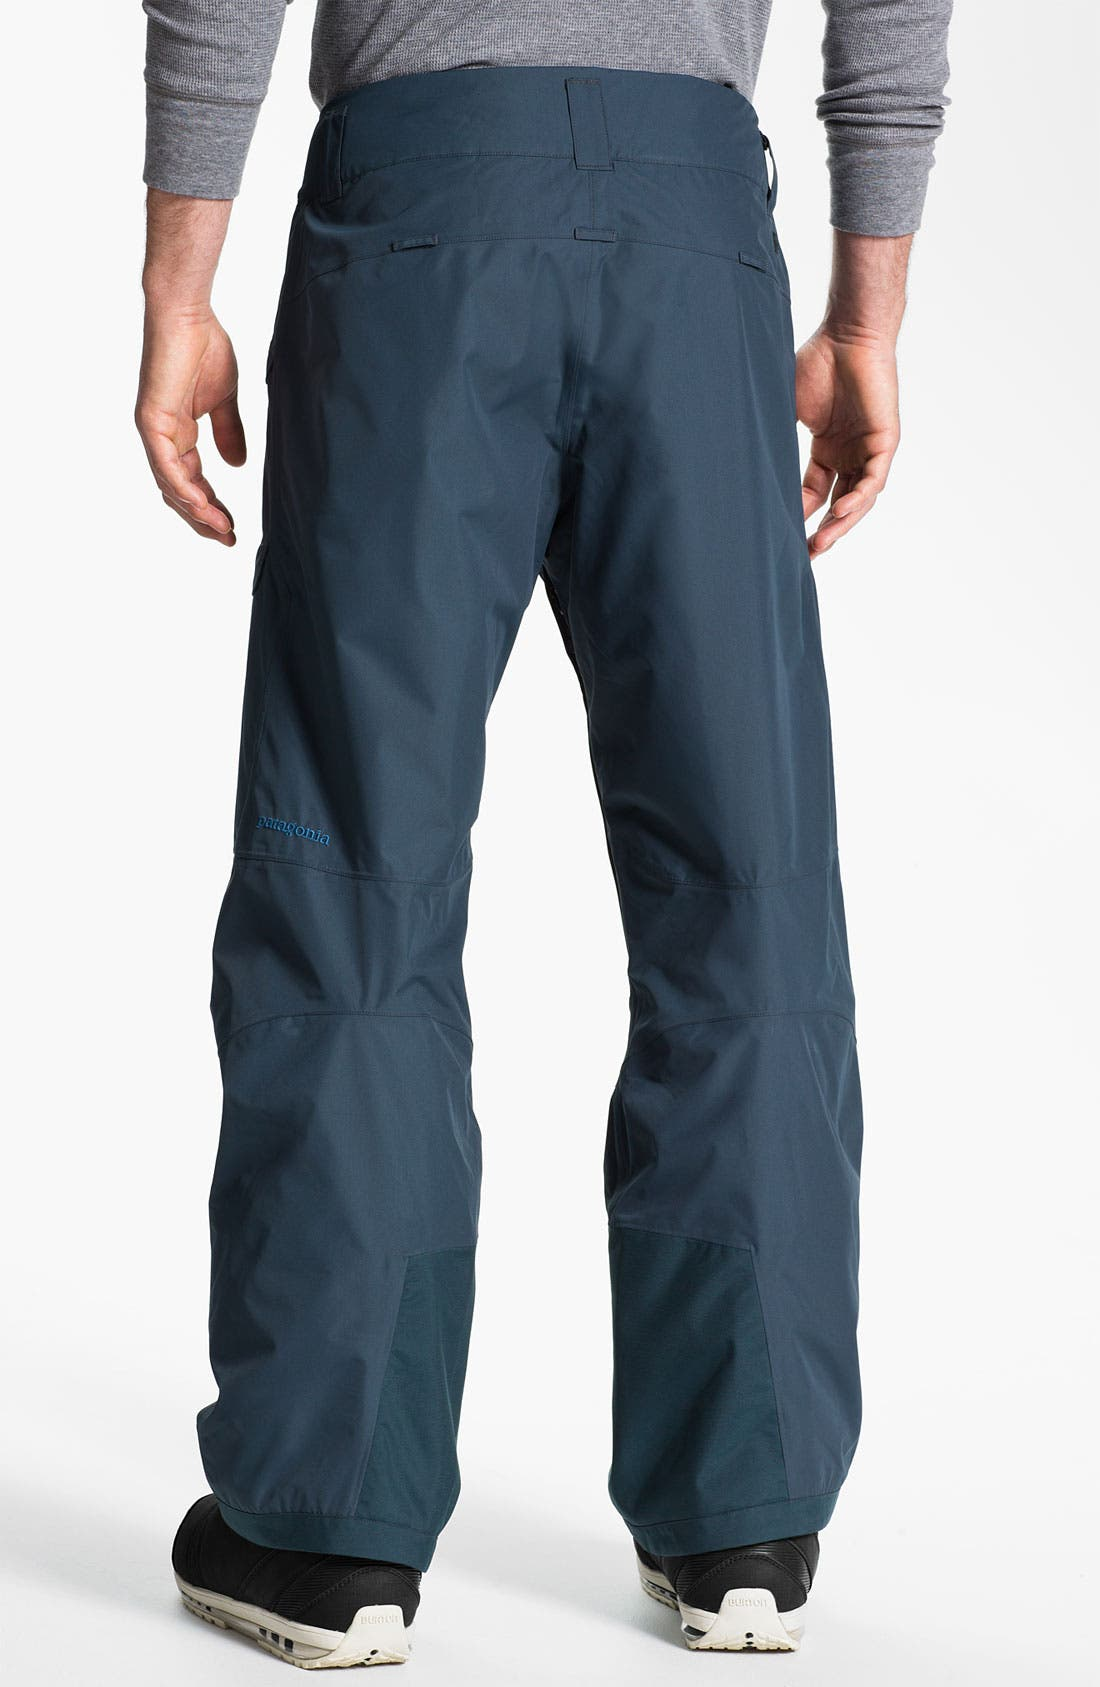 Alternate Image 1 Selected - Patagonia 'Snowshot' Snowboard Pants (Online Exclusive)